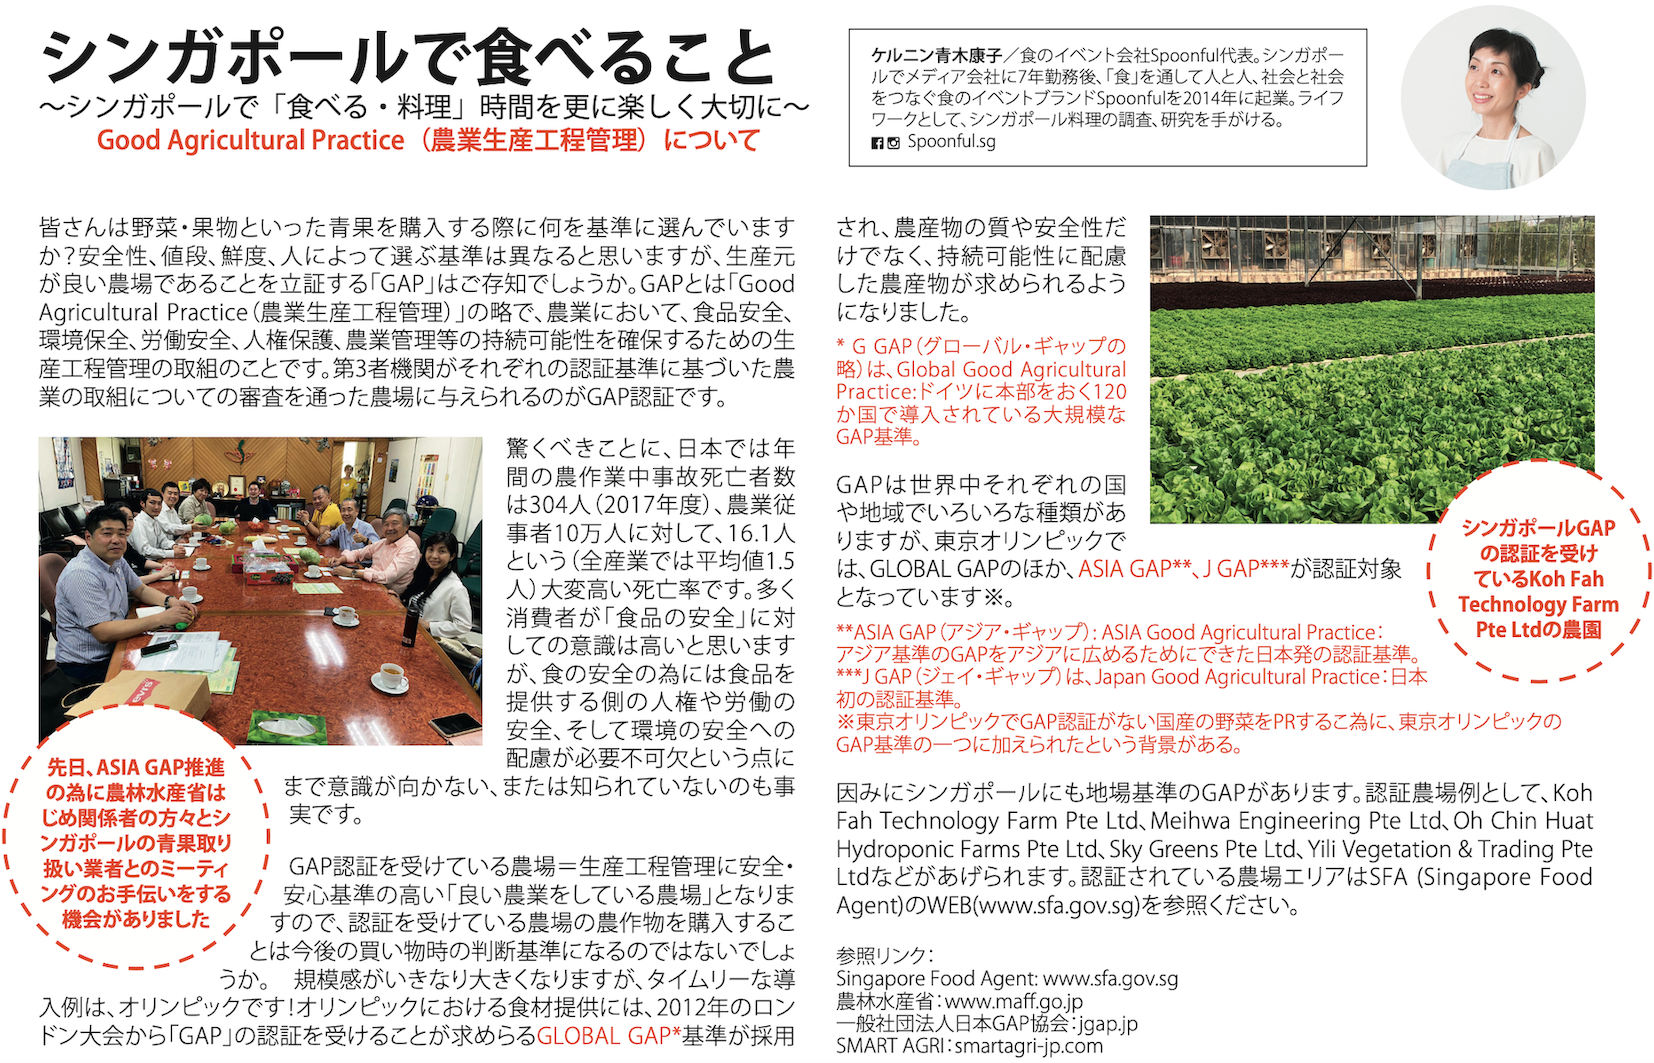 J+PLUS – Eating in Singapore, Issue 4 April 2020